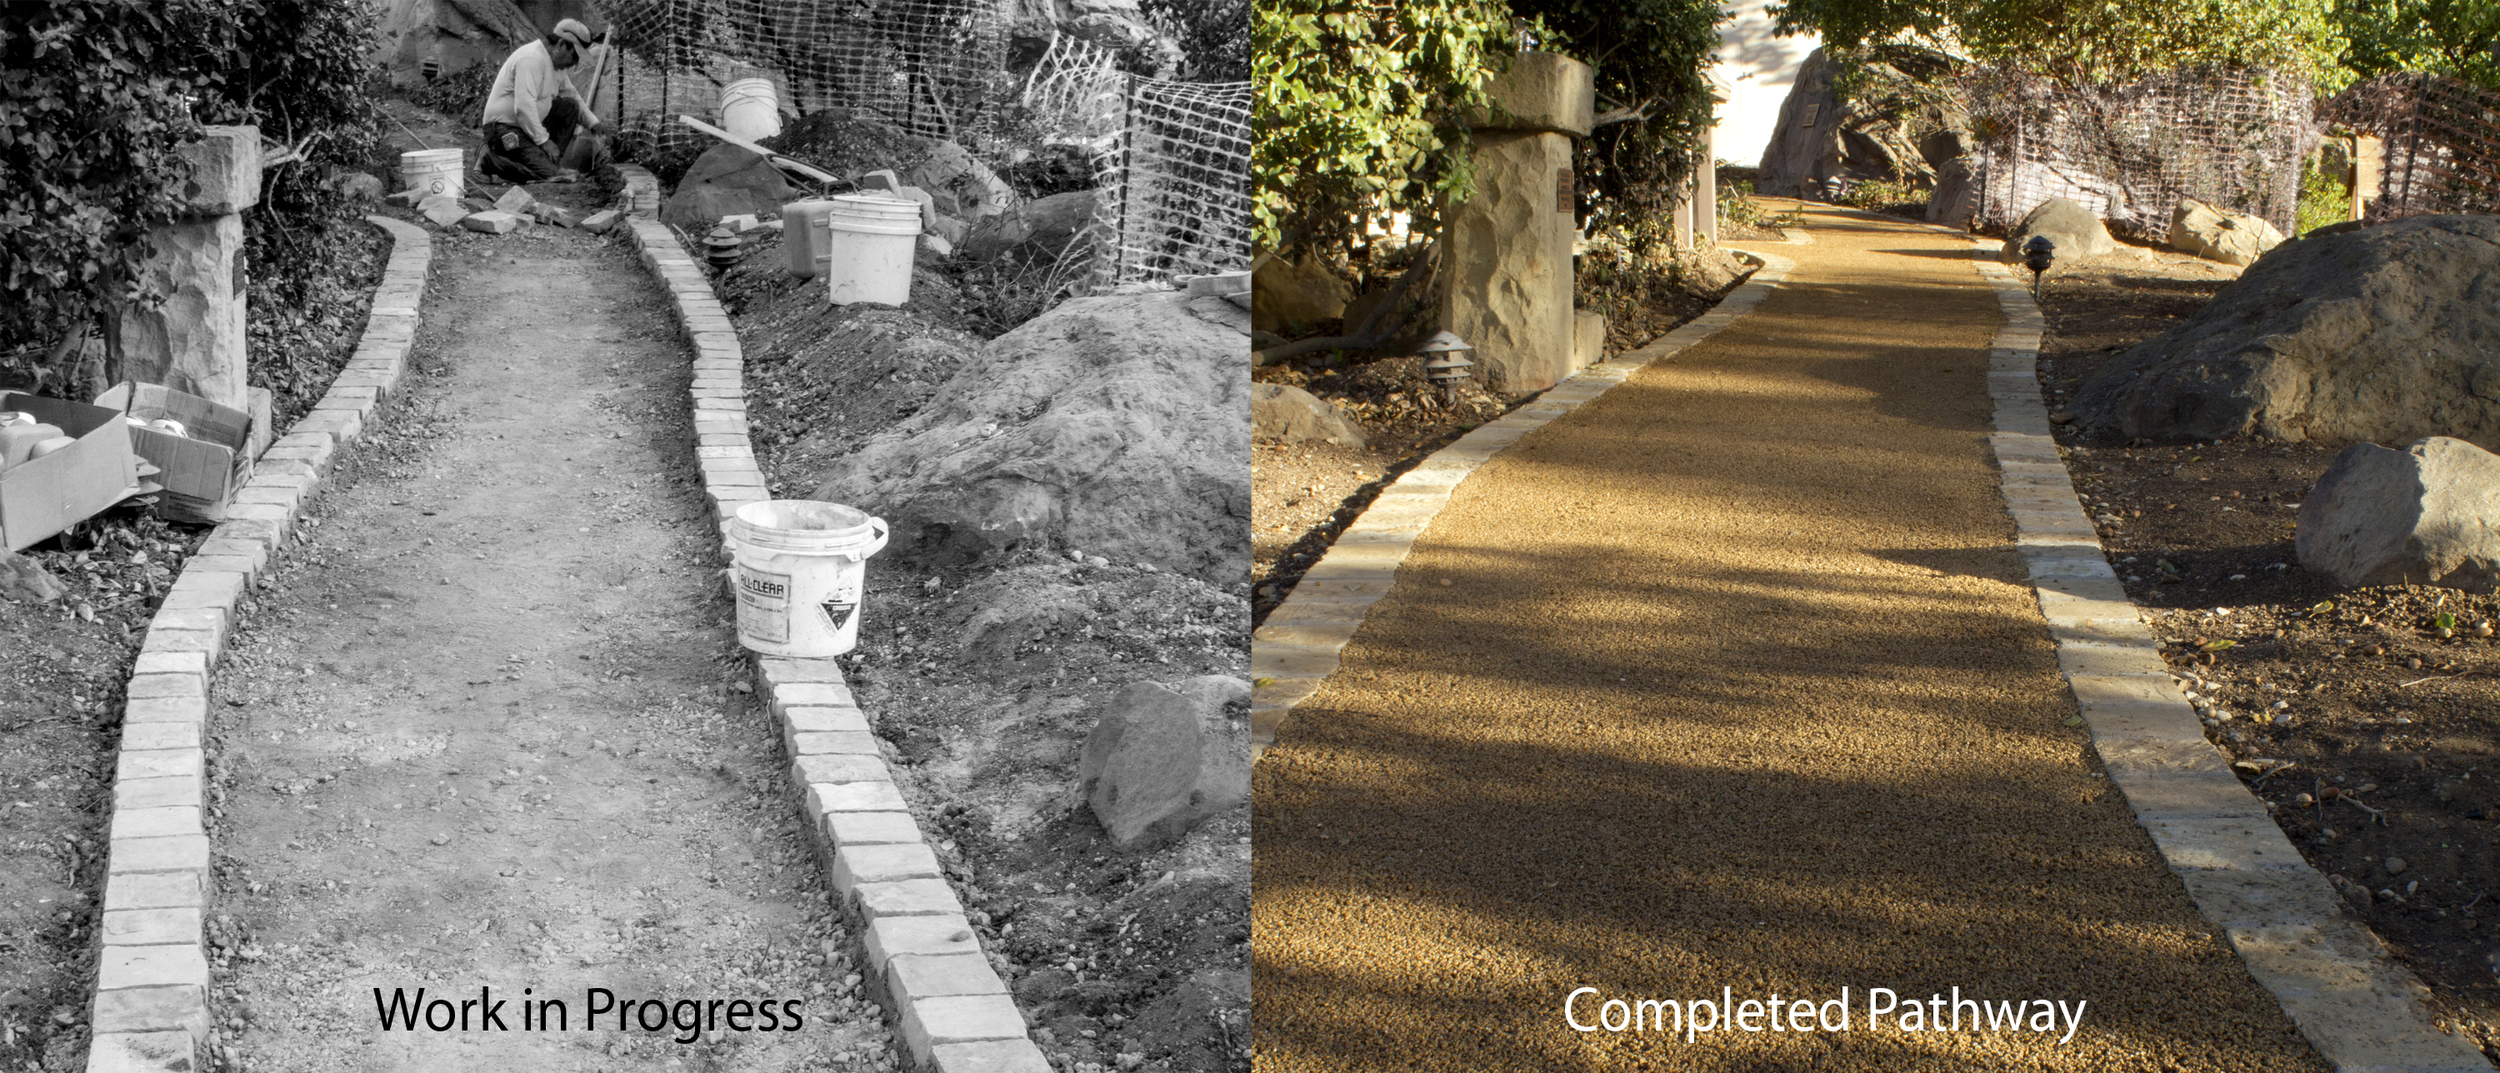 Pathways edged with stone secured in cement while pathway medium is EcoPave providing a no slip surface that allows water to penetrate through substrate.